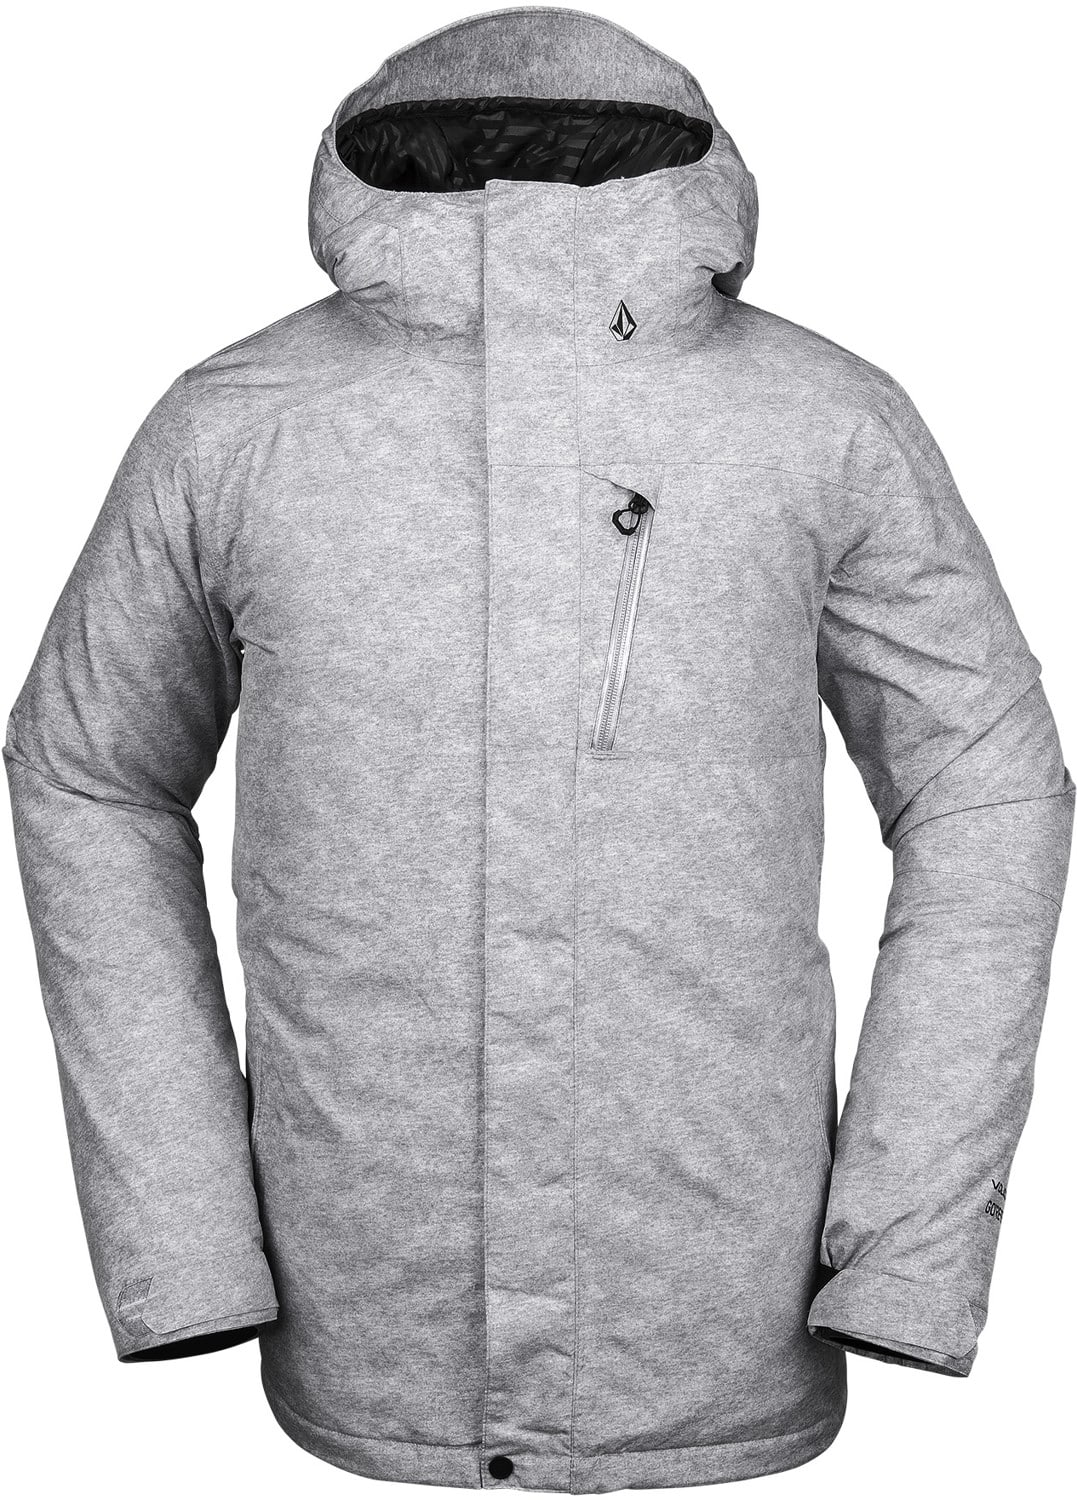 Volcom L Gore Tex Insulated Jacket Free Shipping Tactics